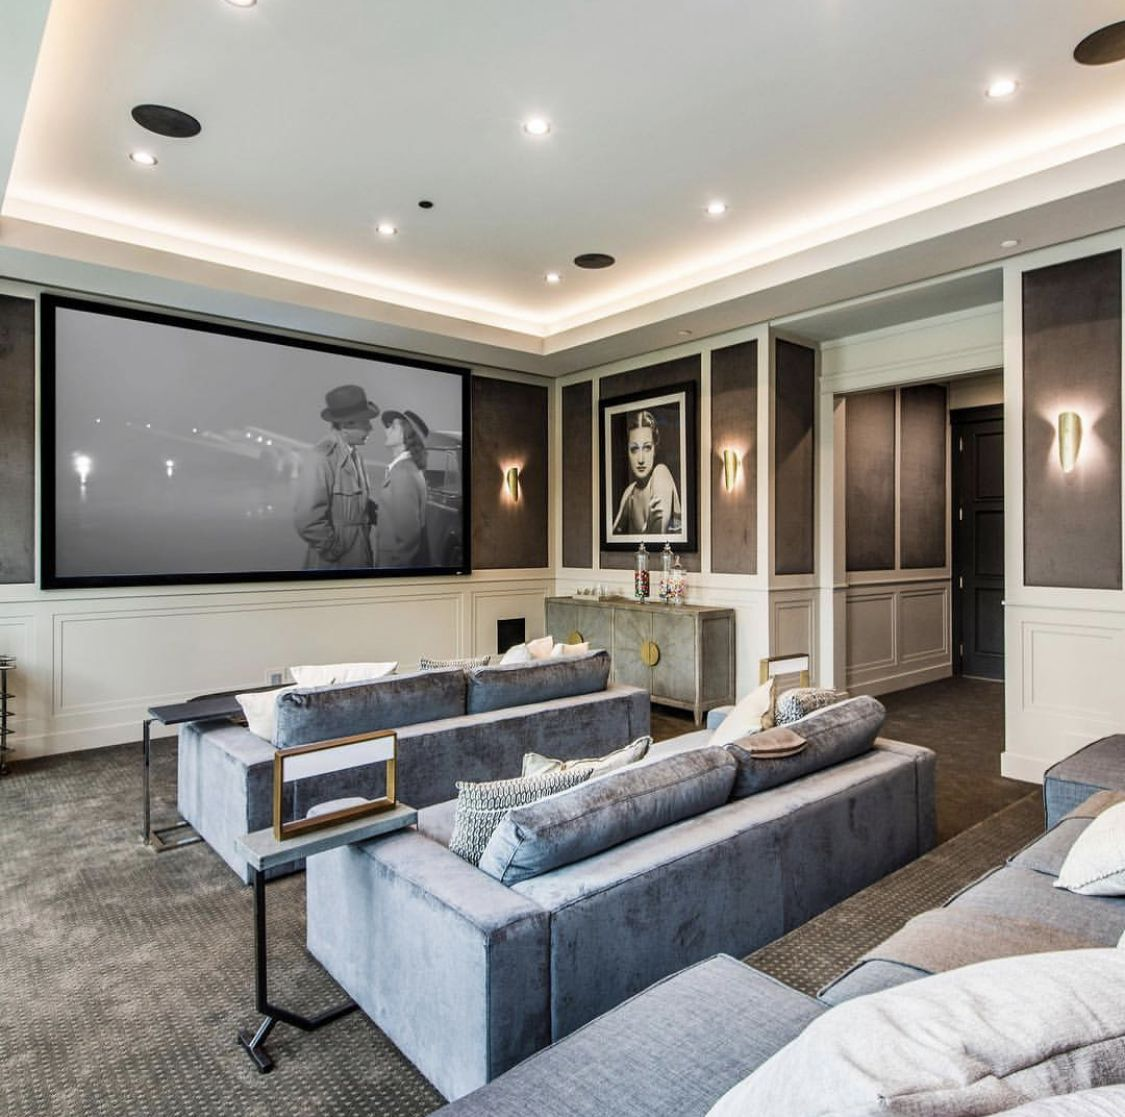 Cozy Home Theater: Home, Home Buying, Lounge Areas